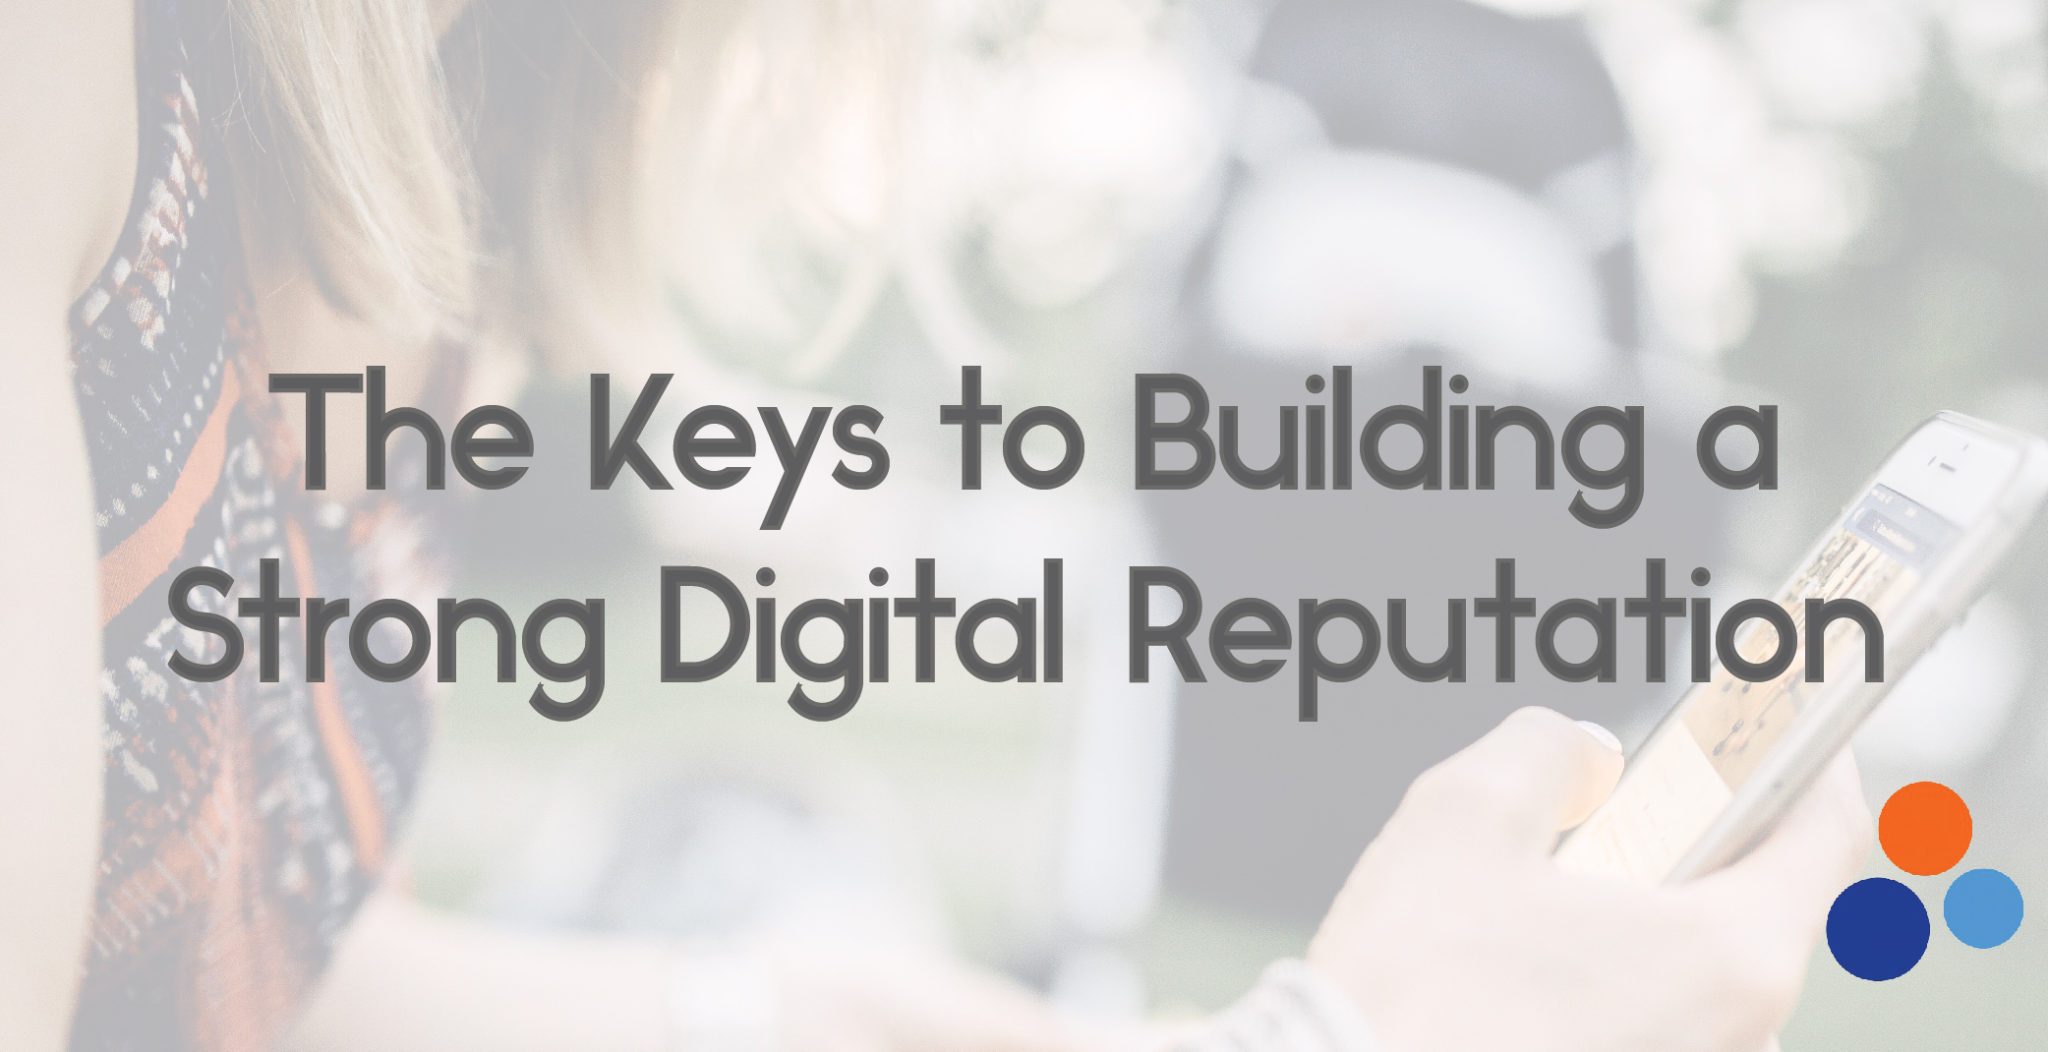 The Keys to Building a Strong Digital Reputation